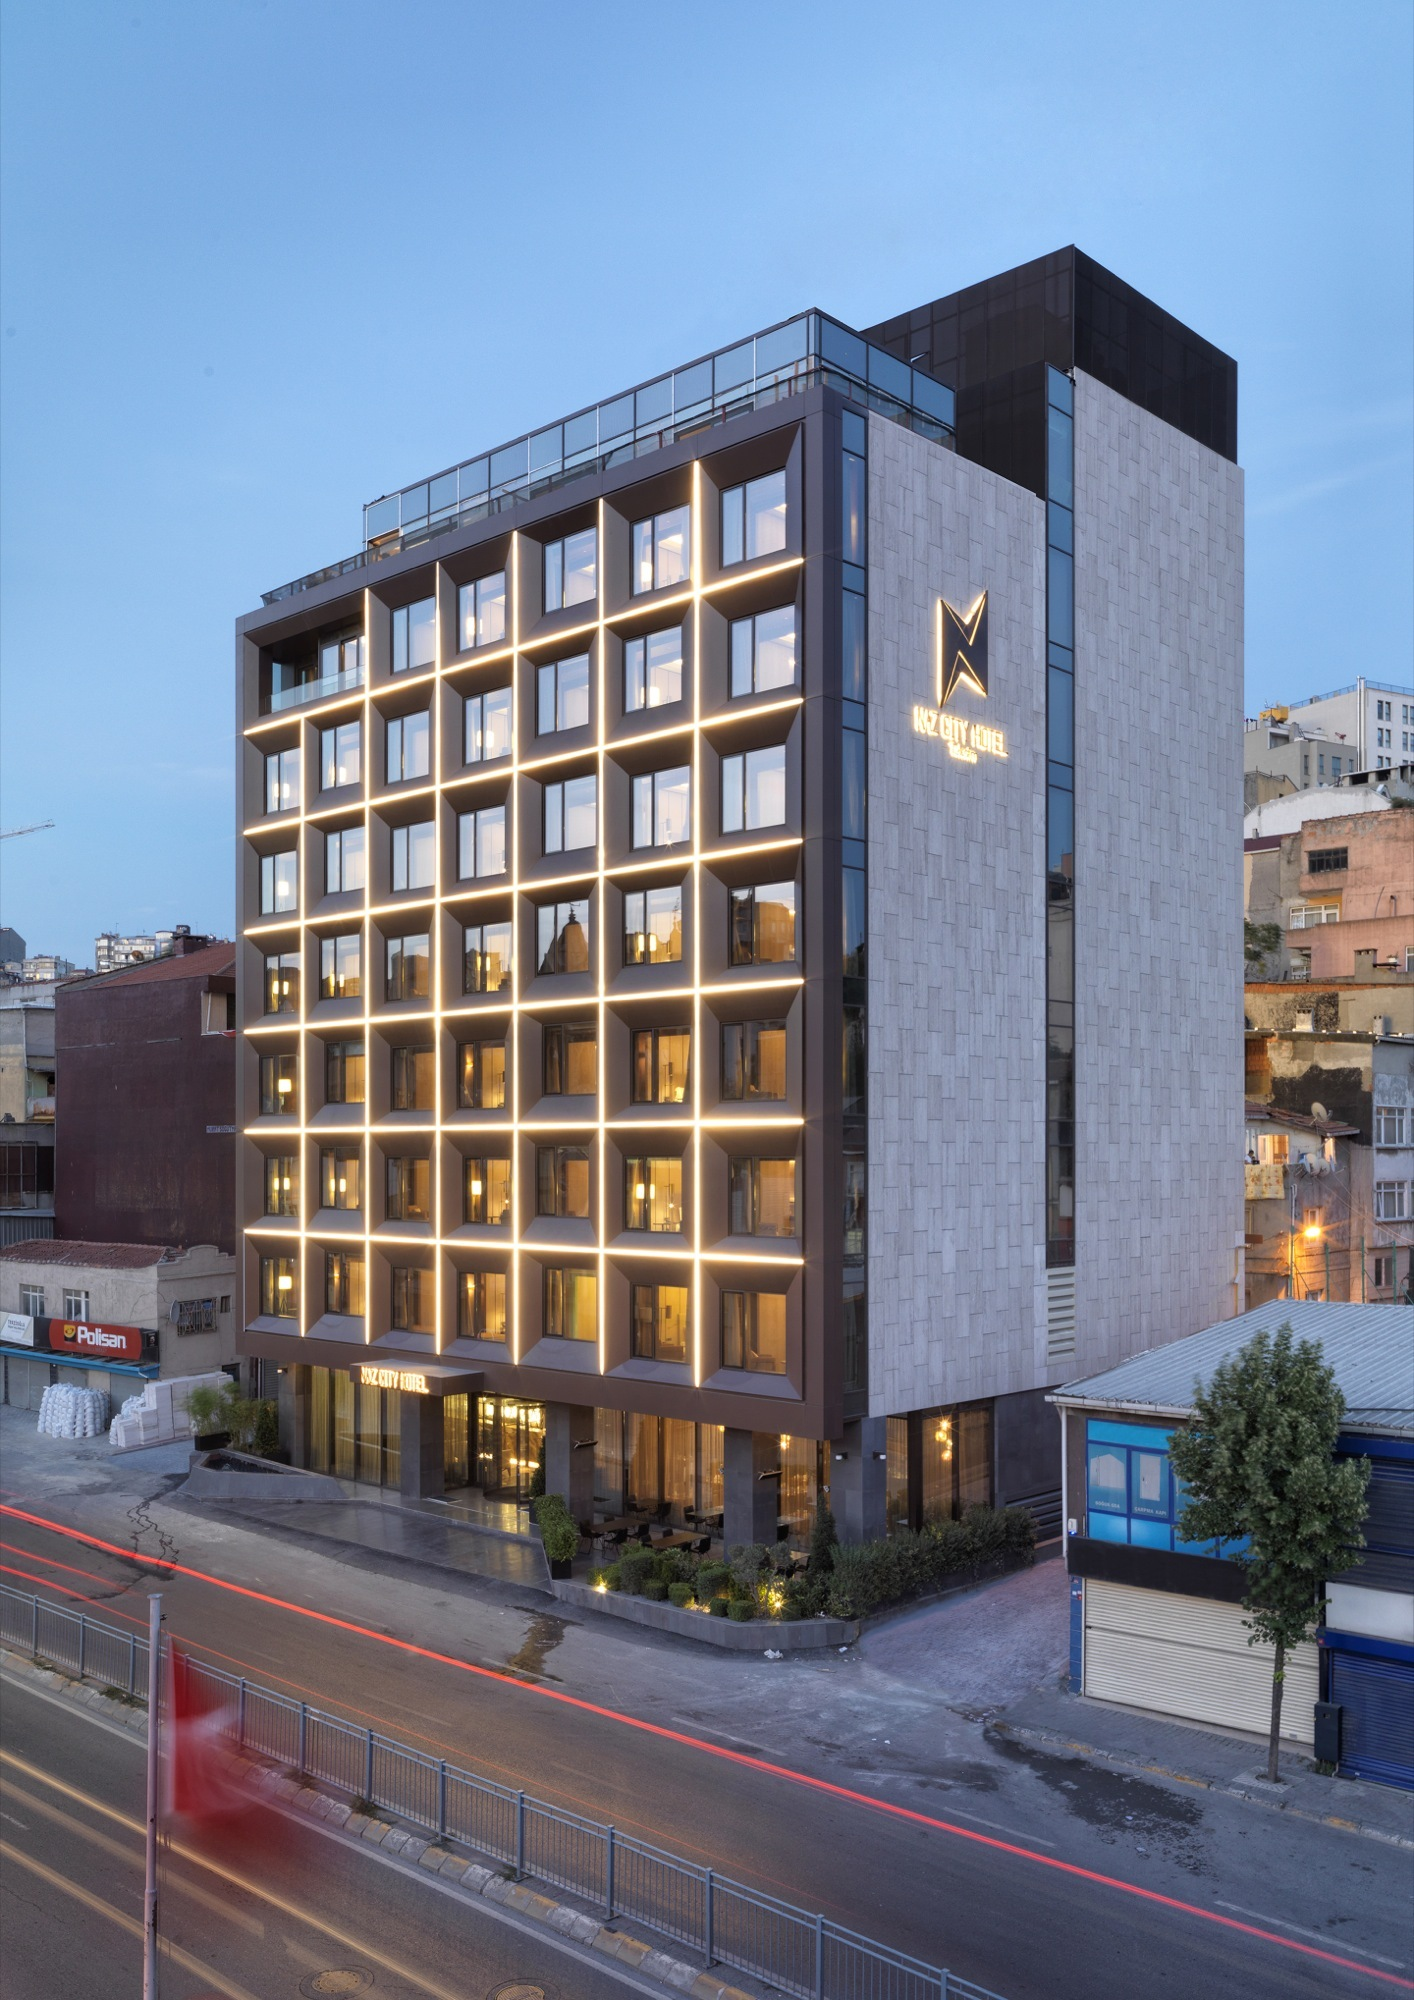 Naz city hotel taksim metex design group archdaily for Design hotels